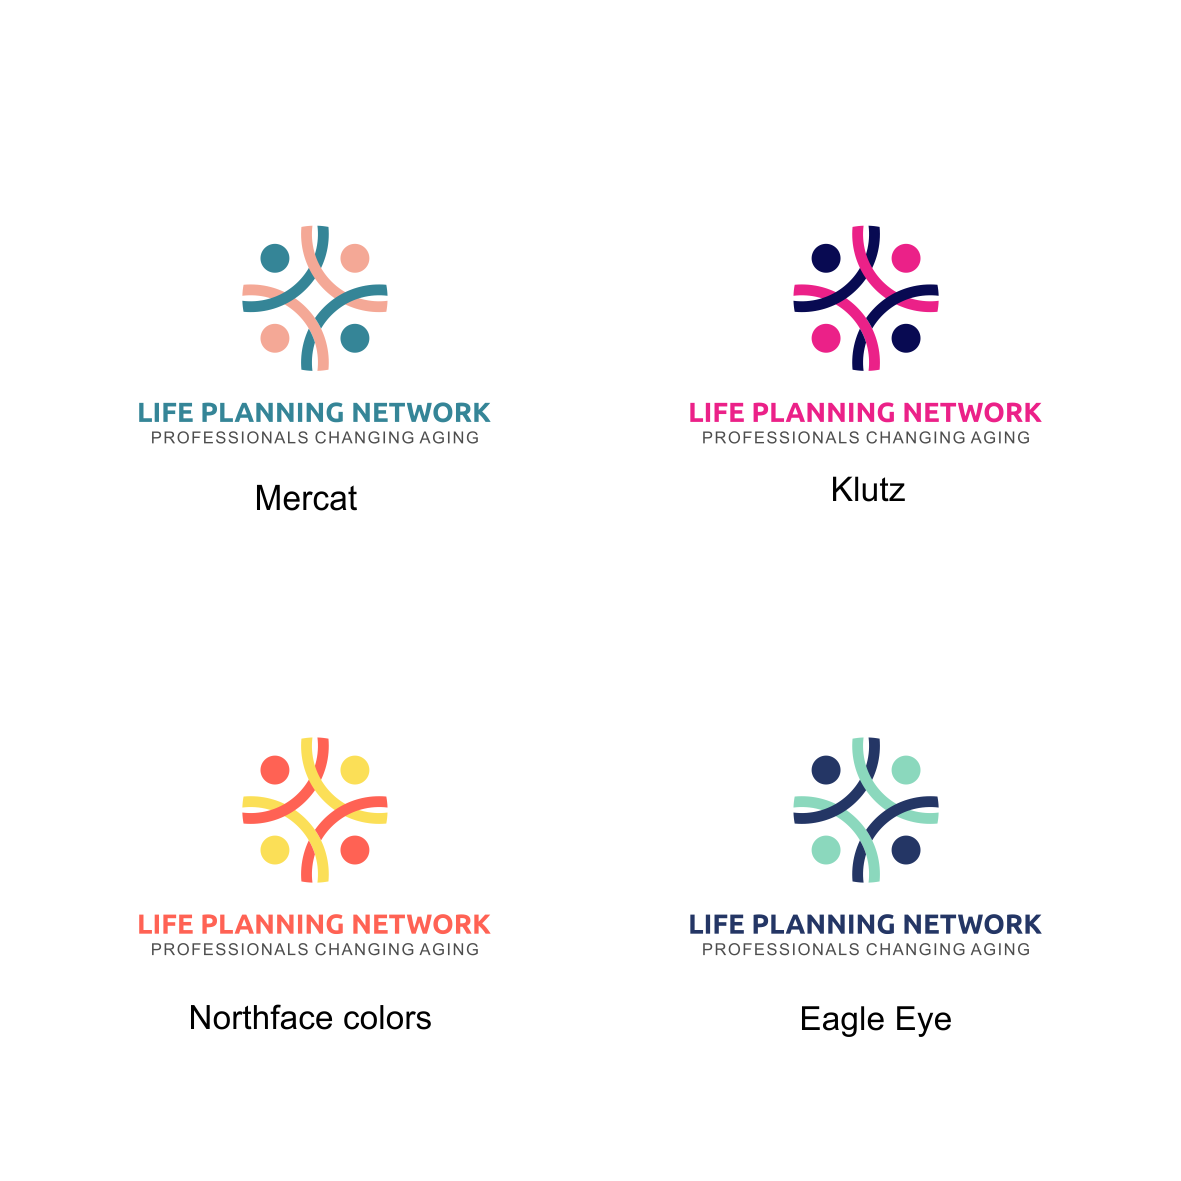 Design a vibrant, forward-looking logo for an organization of engaged professional life planners